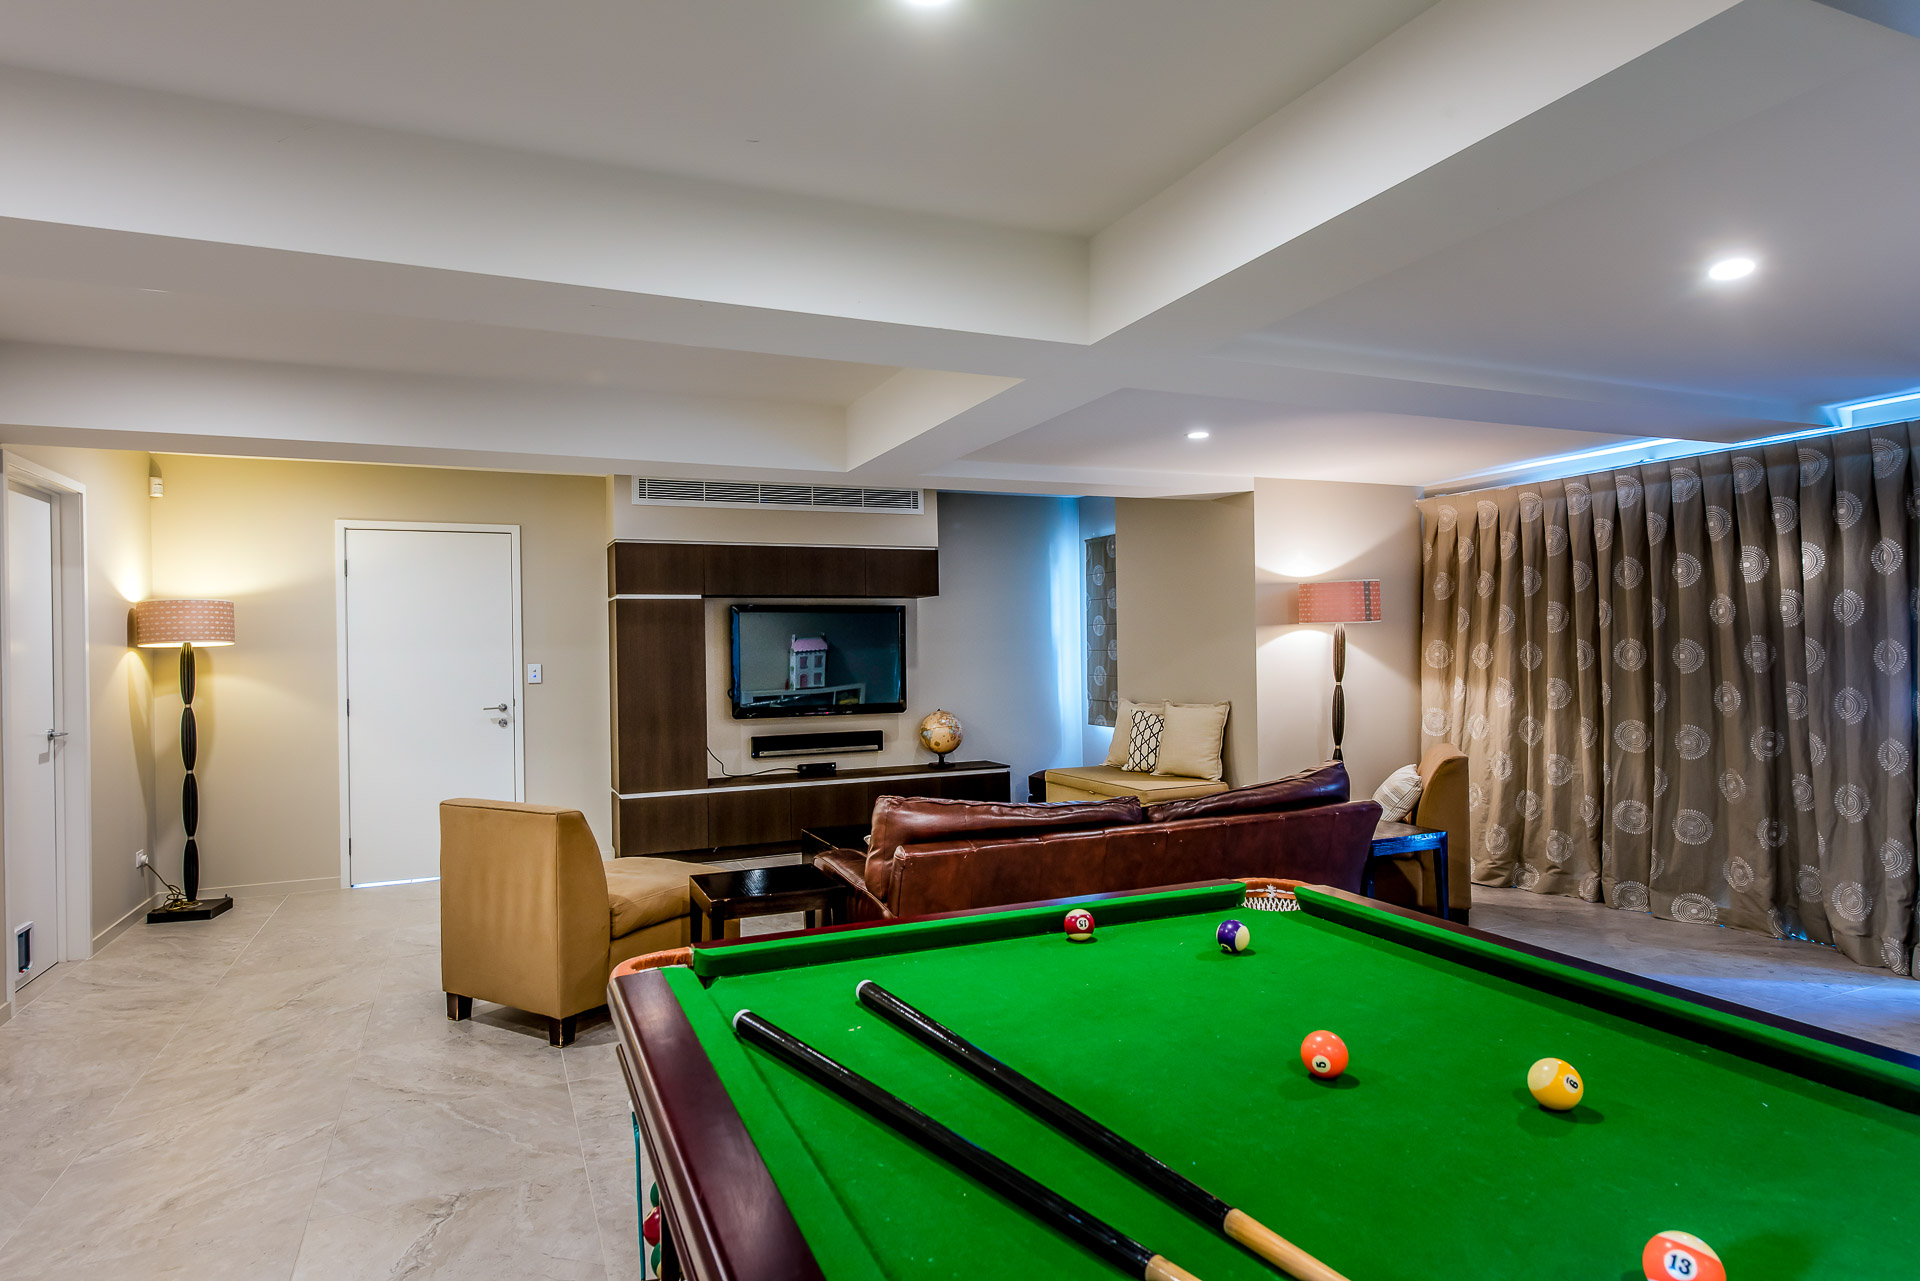 Rumpus room, kids room, games room, pool room, den, man cave, minka joinery